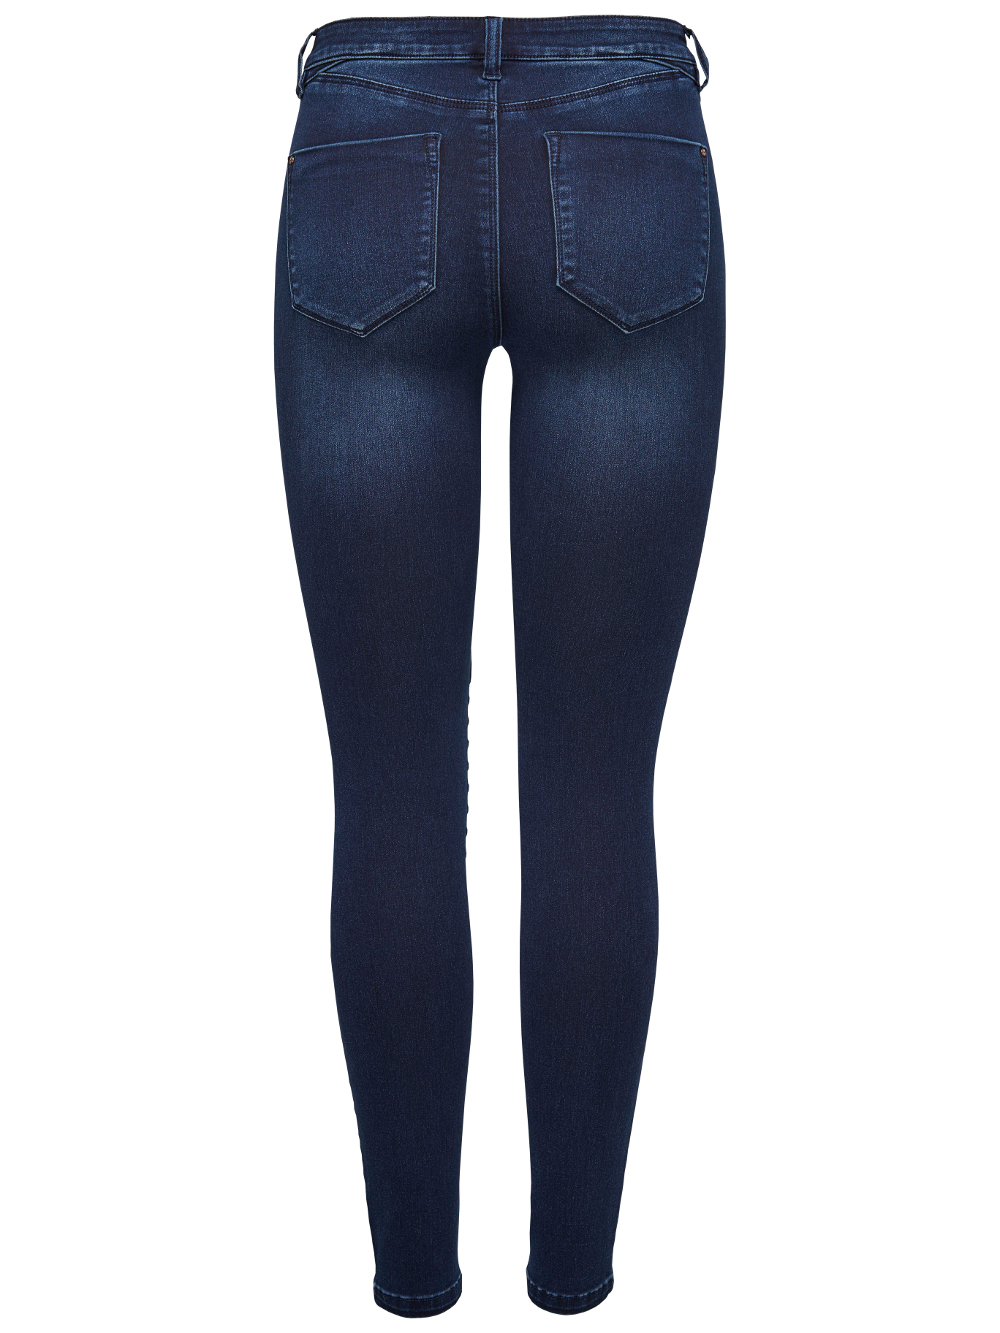 8269ae3233f1 ONLY Damen Jeans Leggings onlROYAL BIKER REG DNM BJ11502 Jeggings  dunkelblau – Bild 2